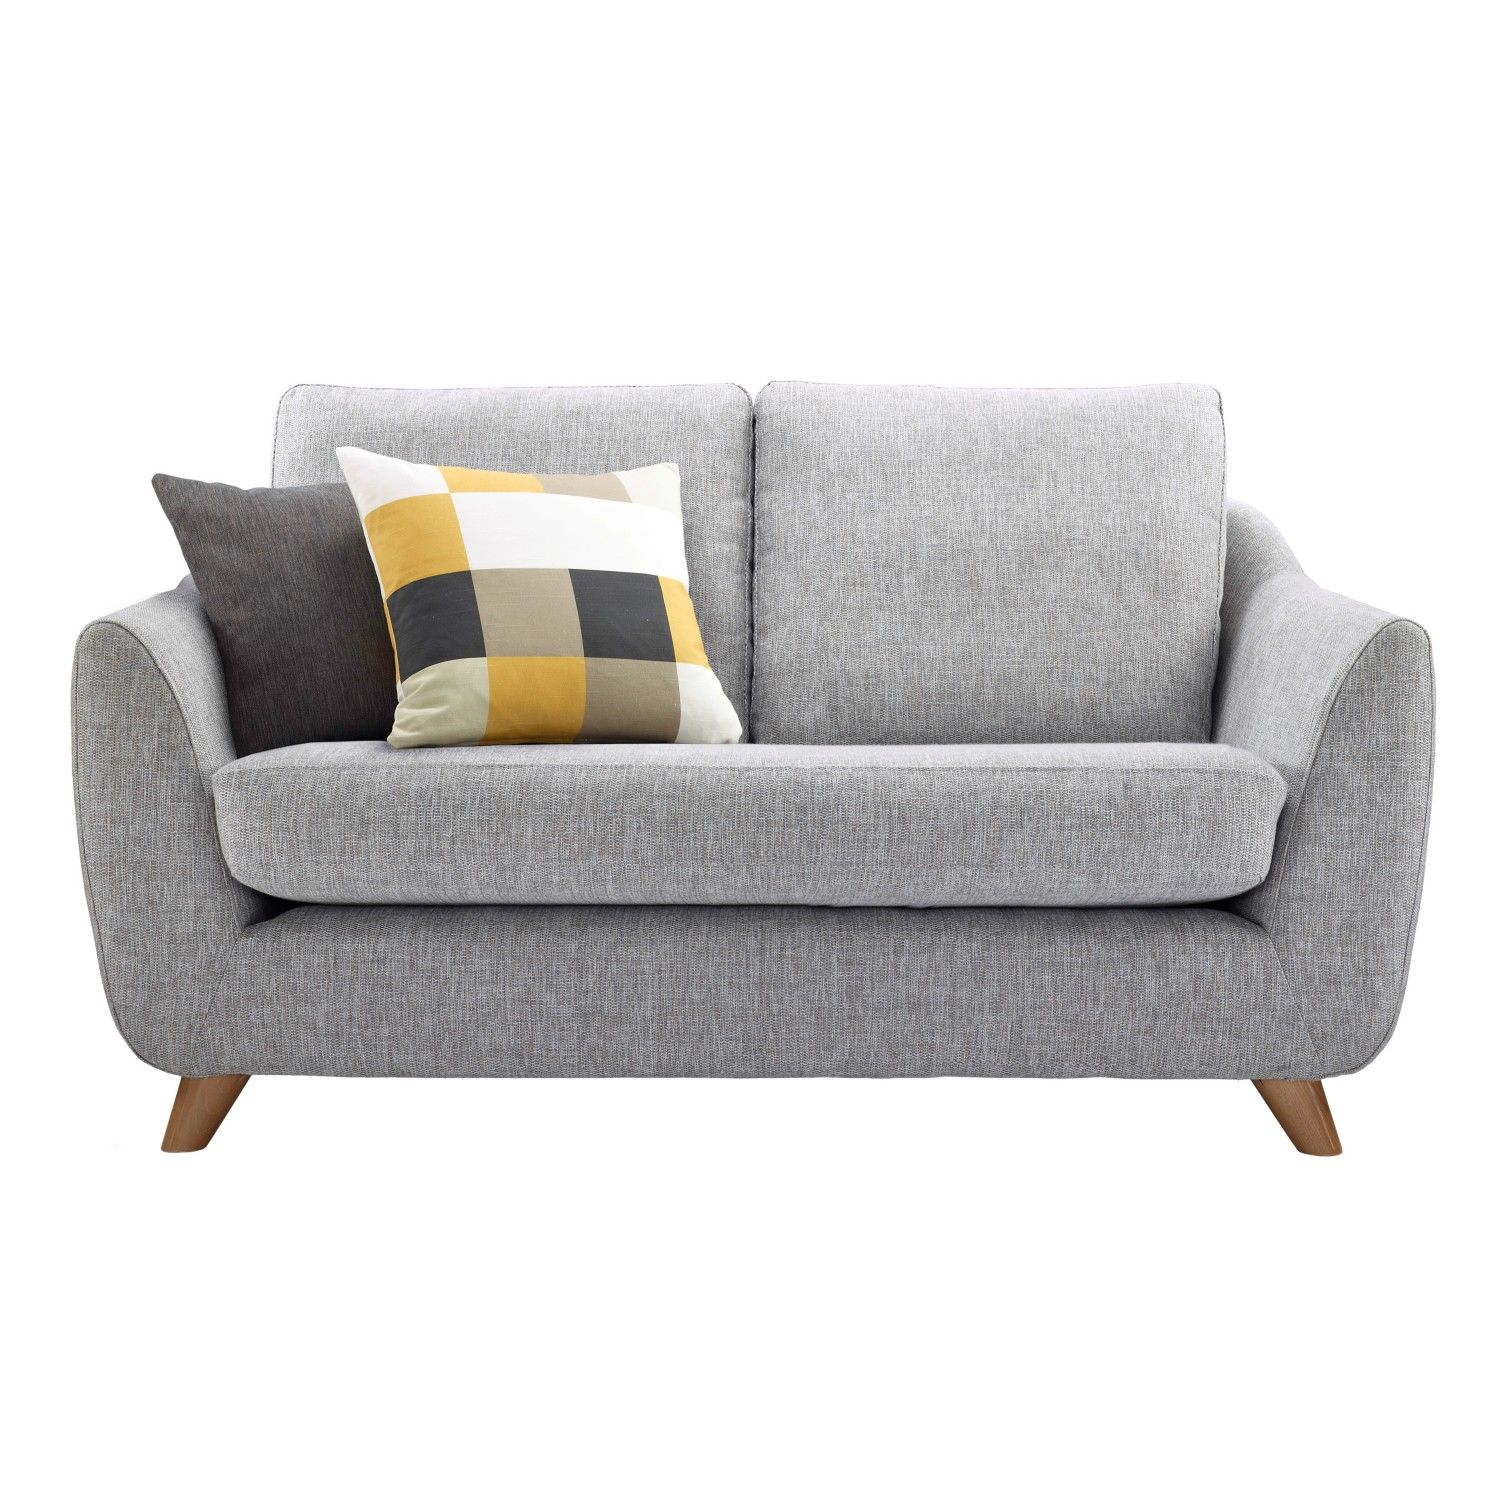 Small Sofa For Bedroom Loveseats For Small Spaces Cheap Small Sofa Decoration